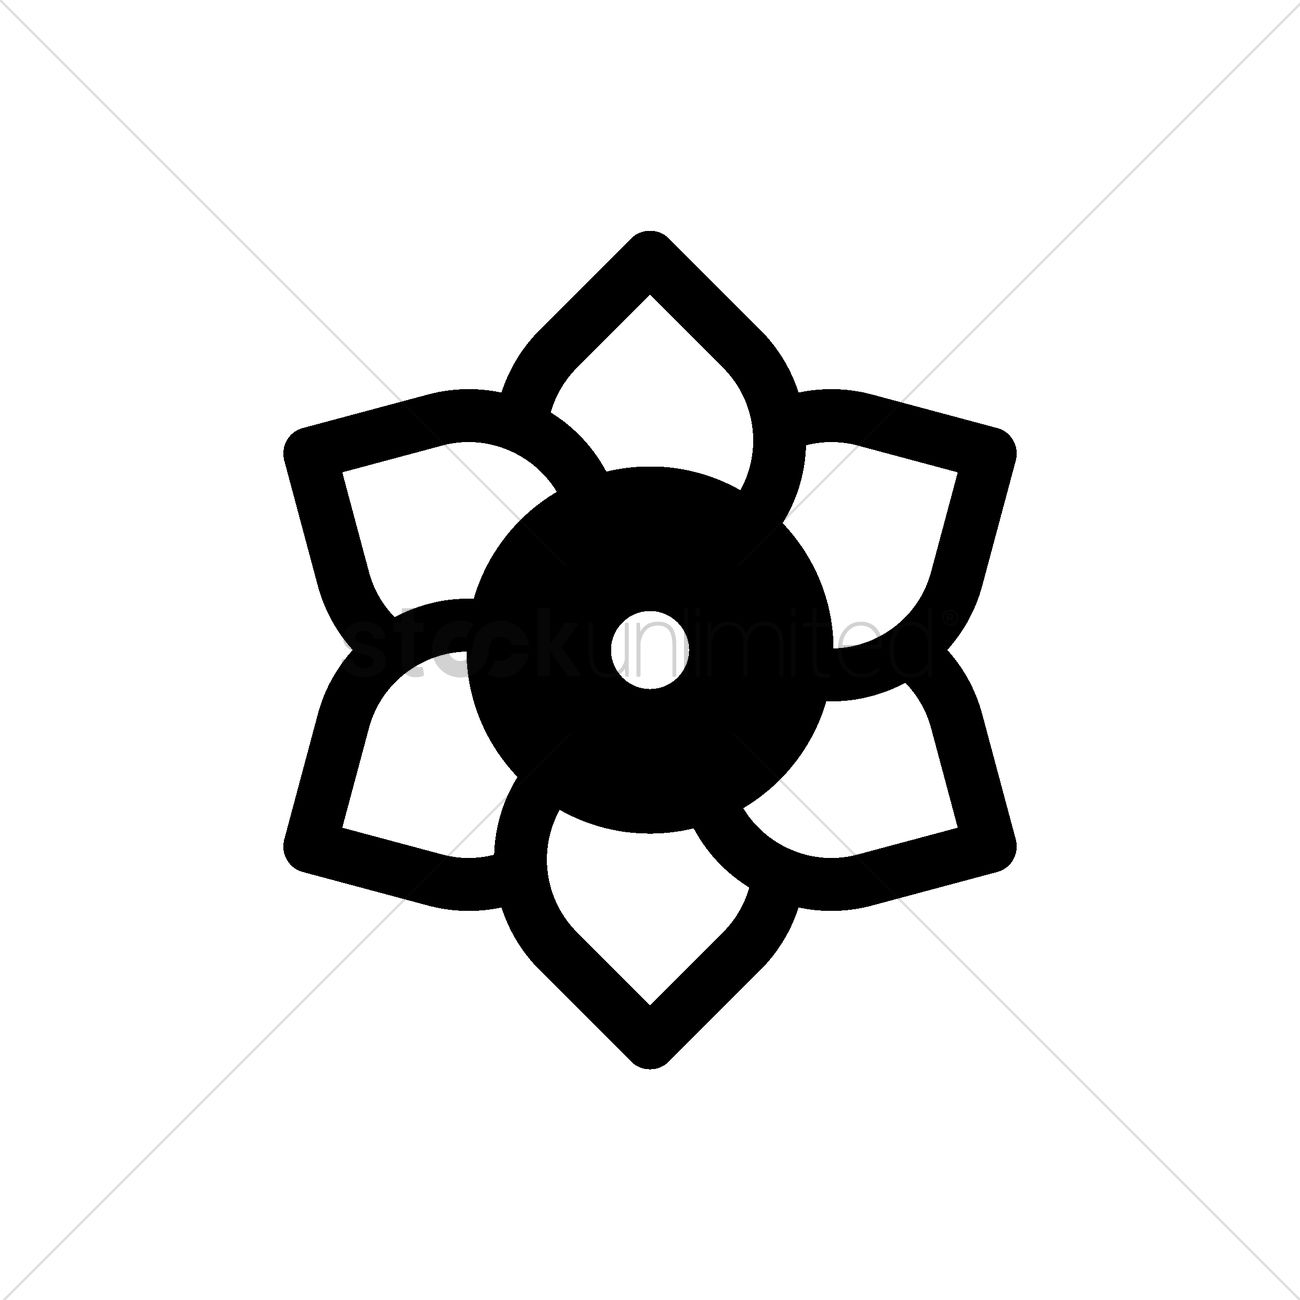 Chinese Lotus Flower Icon Vector Image 1979214 Stockunlimited